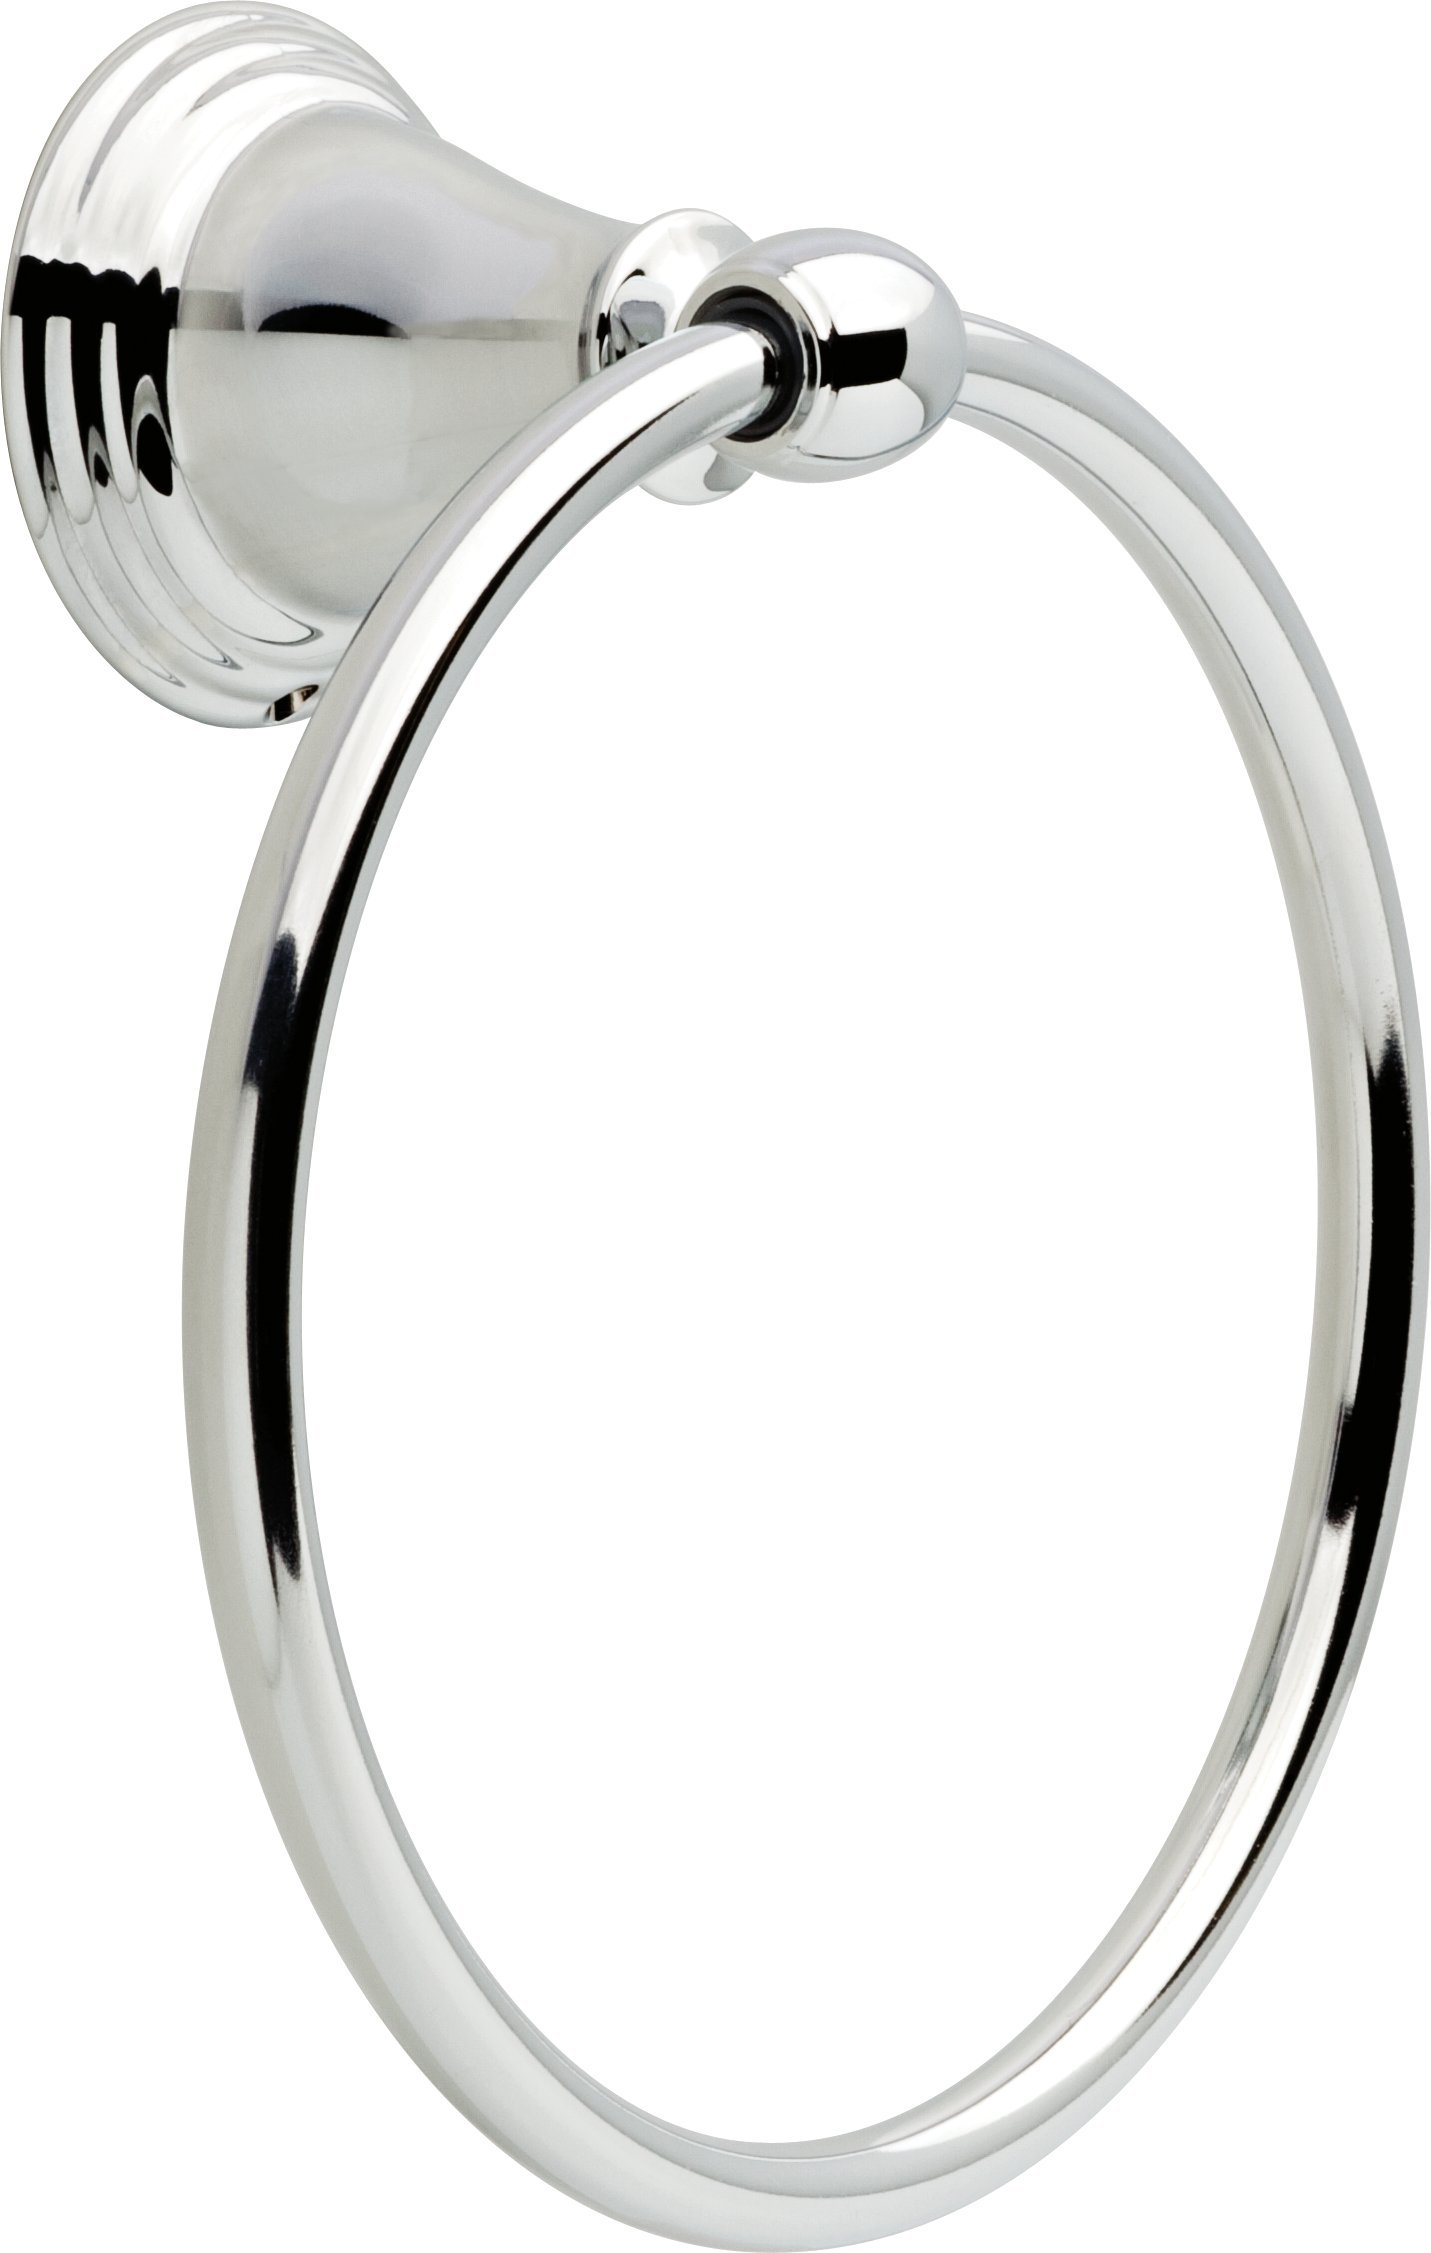 Delta Faucet 70046 Windemere Towel Ring, Polished Chrome by DELTA FAUCET